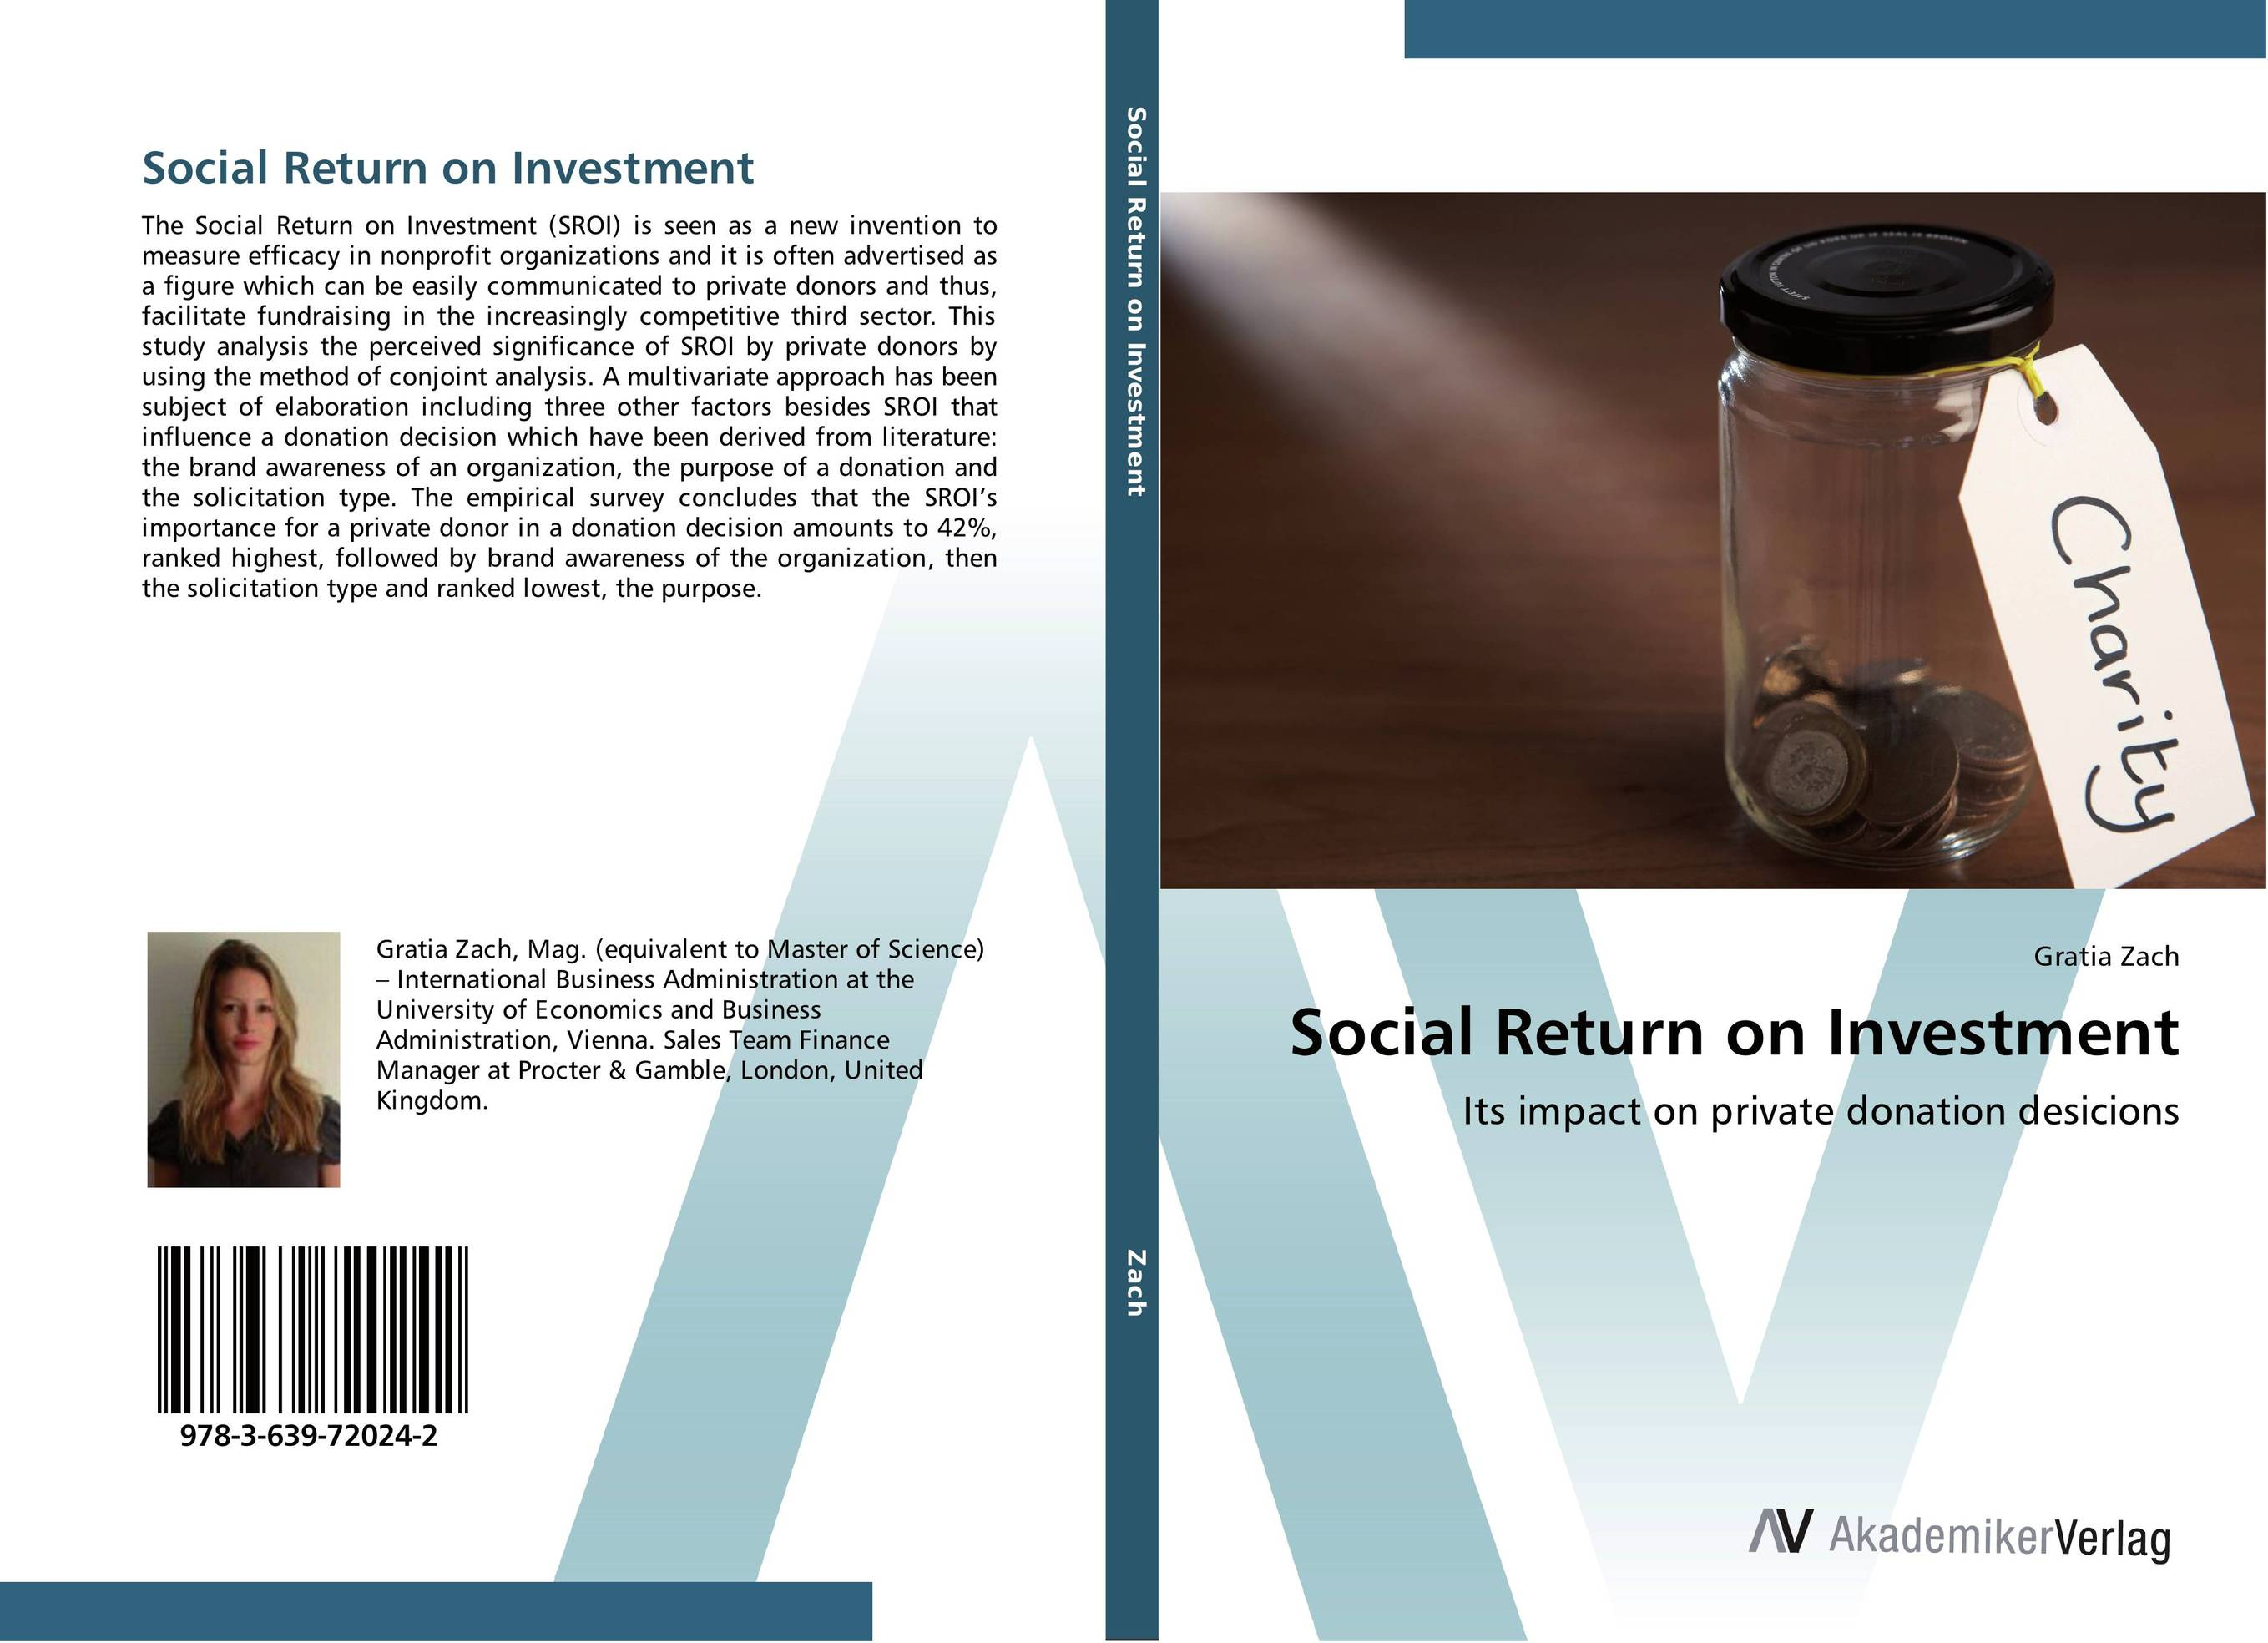 Social Return on Investment private equity investment in the healthcare sector